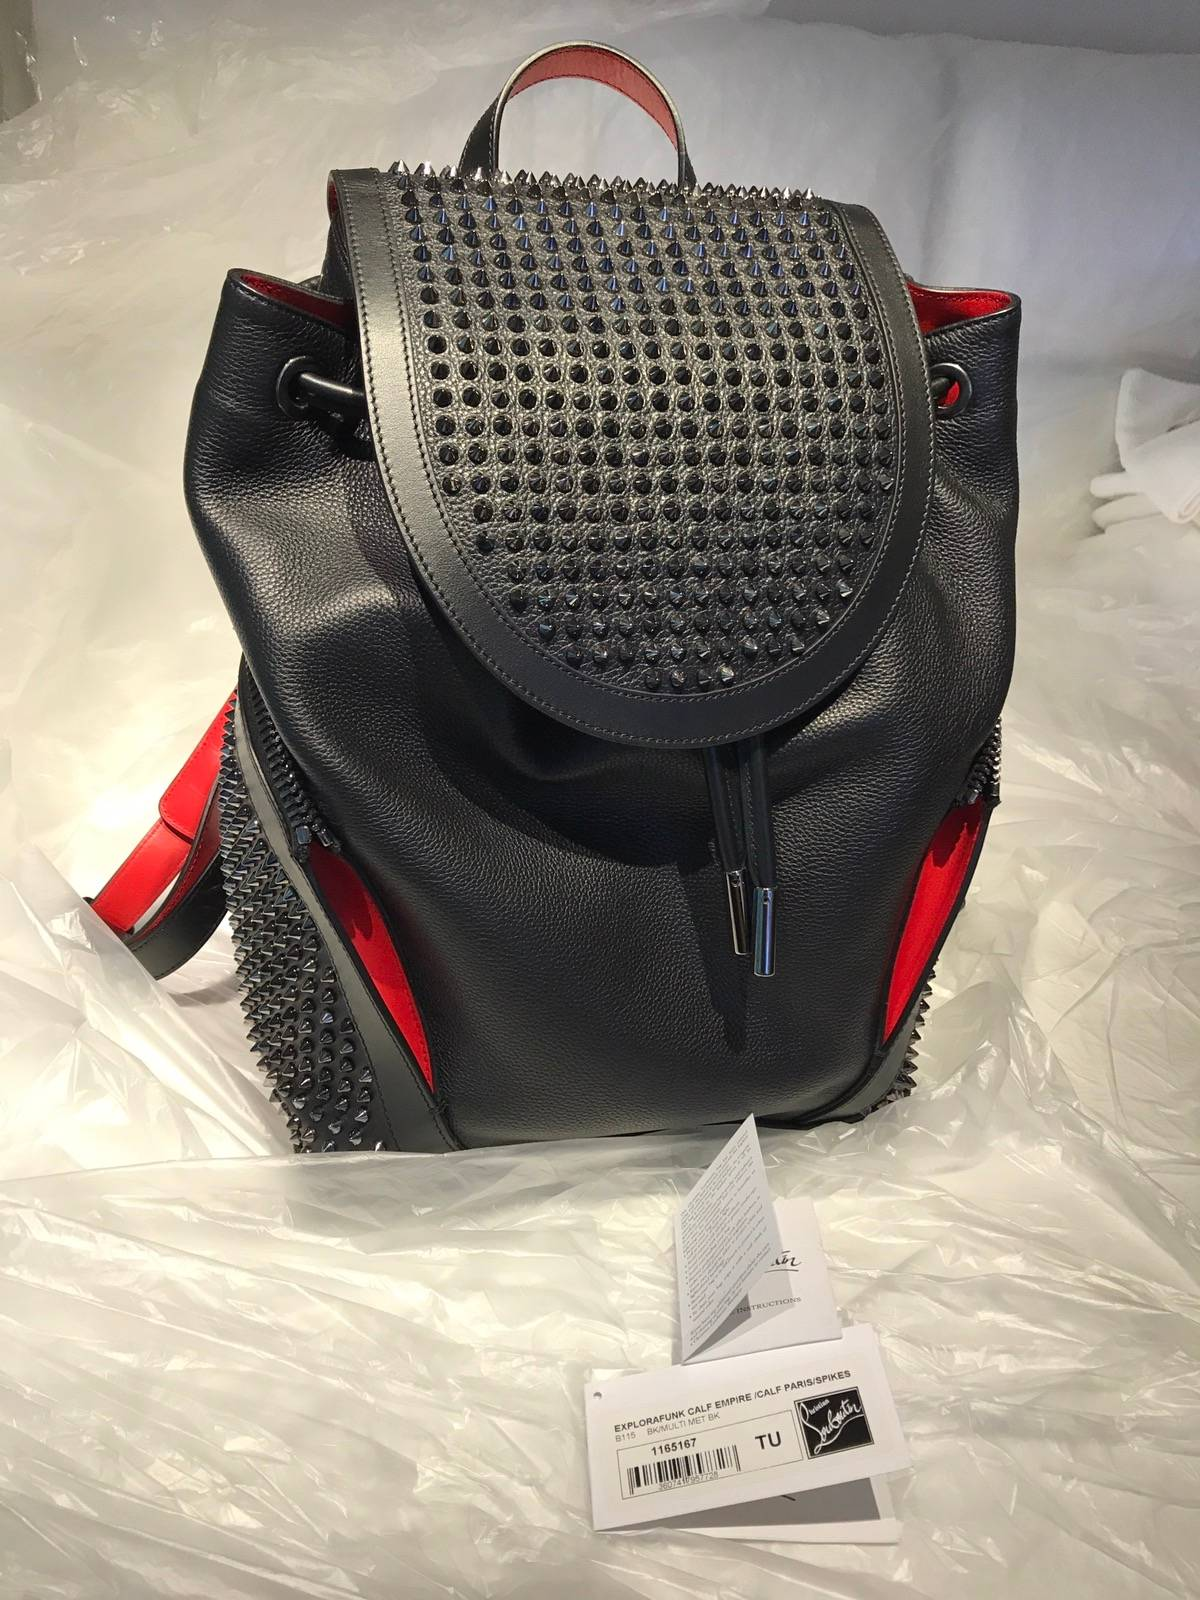 a8c33eeecb5 Christian Louboutin Christian Louboutin Unisex Explorafunk Empire Backpack  Black 1165167 B115 Size One Size $775